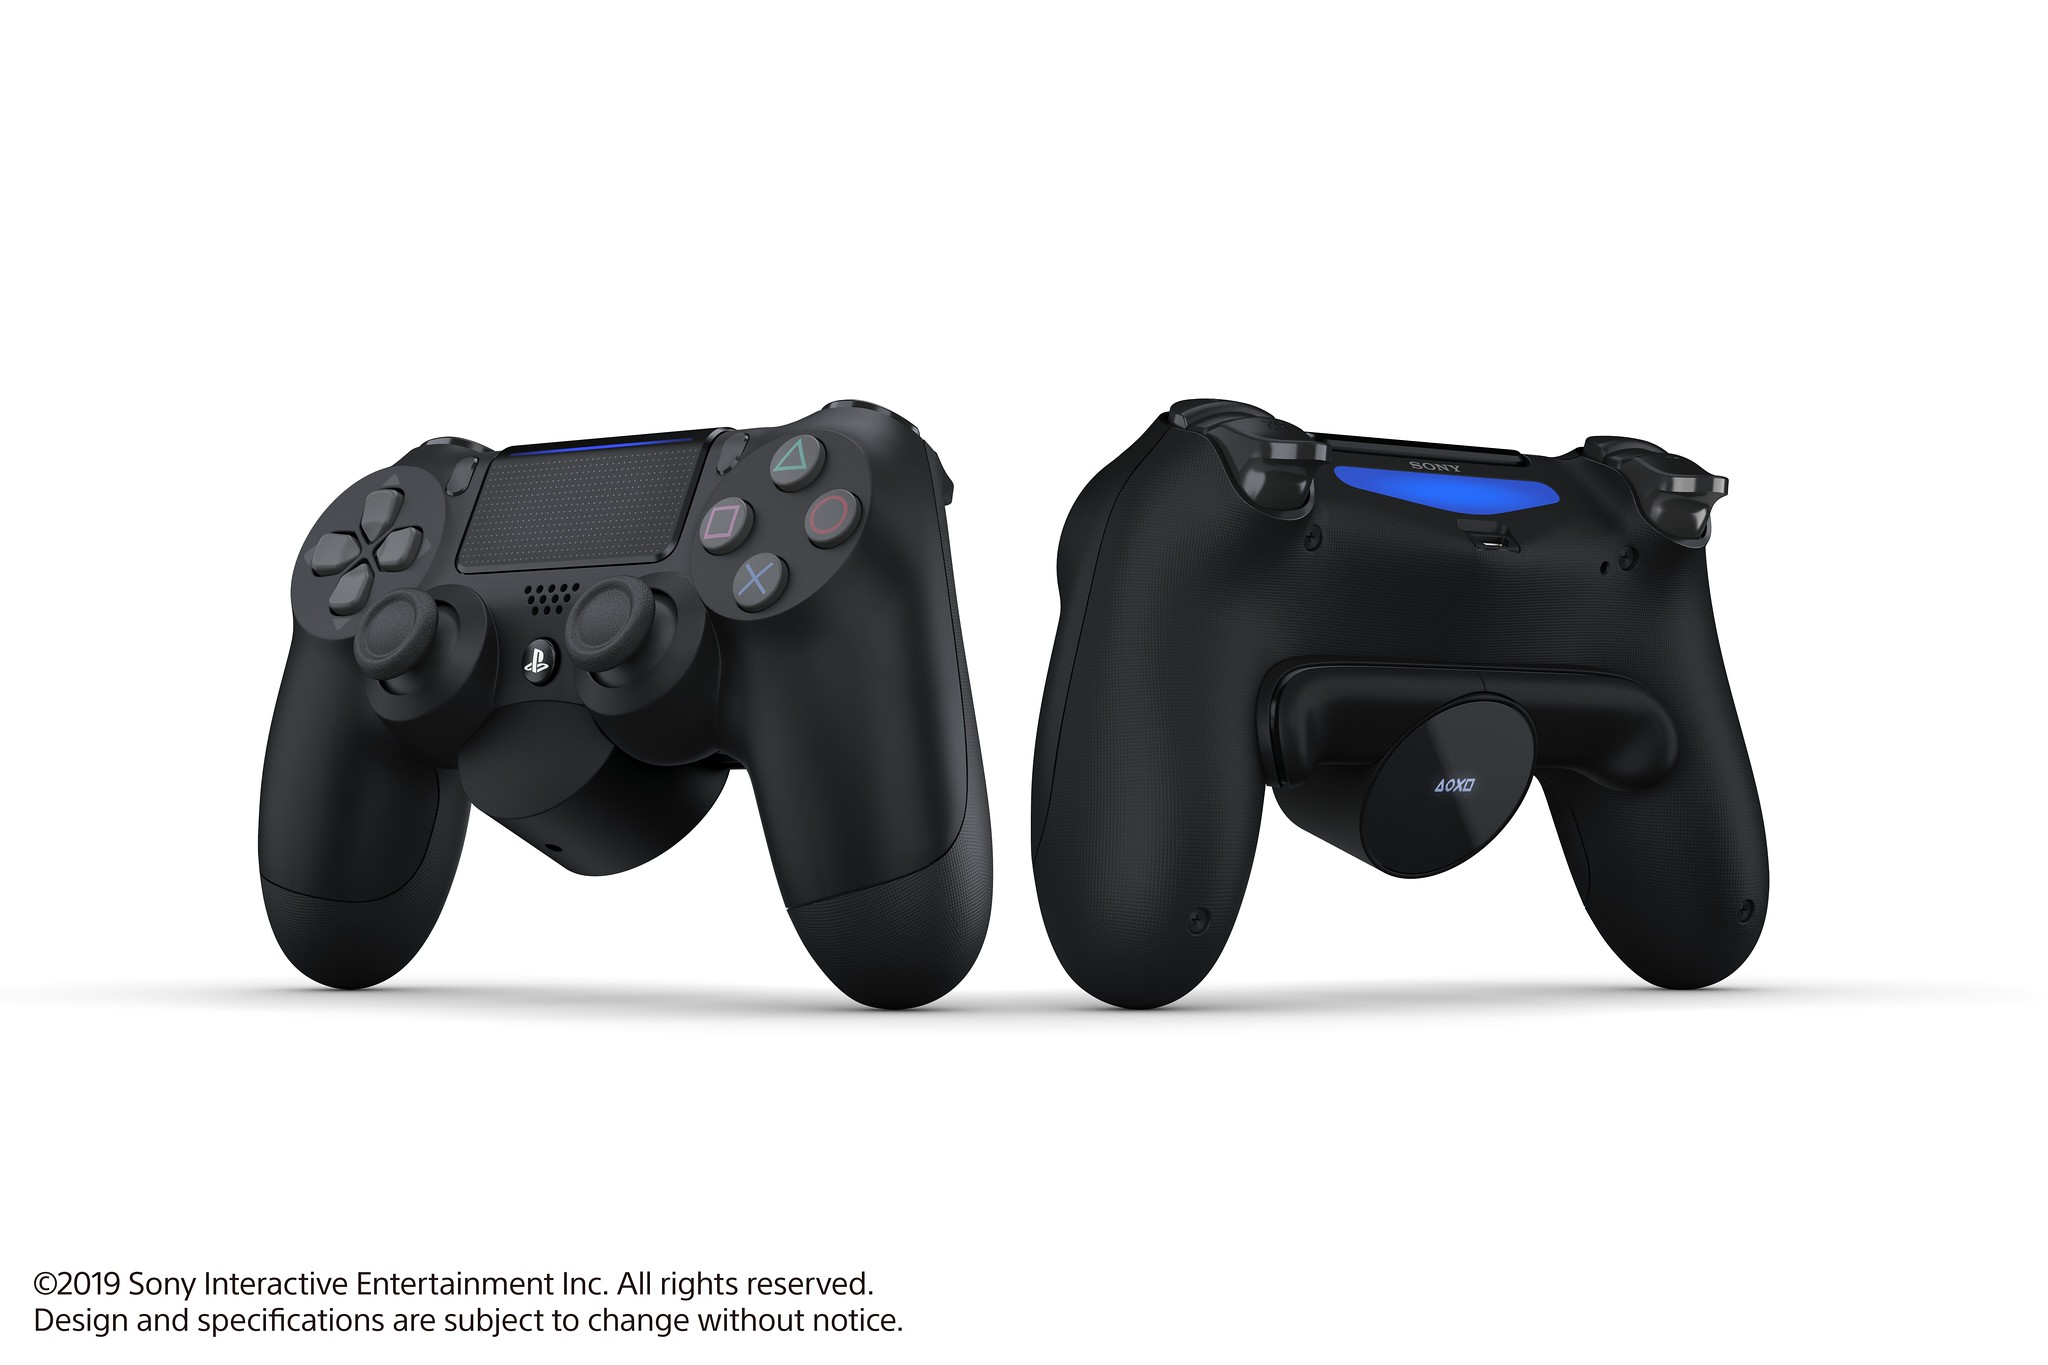 ps4 controller back button attachment, Sony PlayStation introduces a DualShock 4 back button attachment aimed for competitive use, Gadget Pilipinas, Gadget Pilipinas